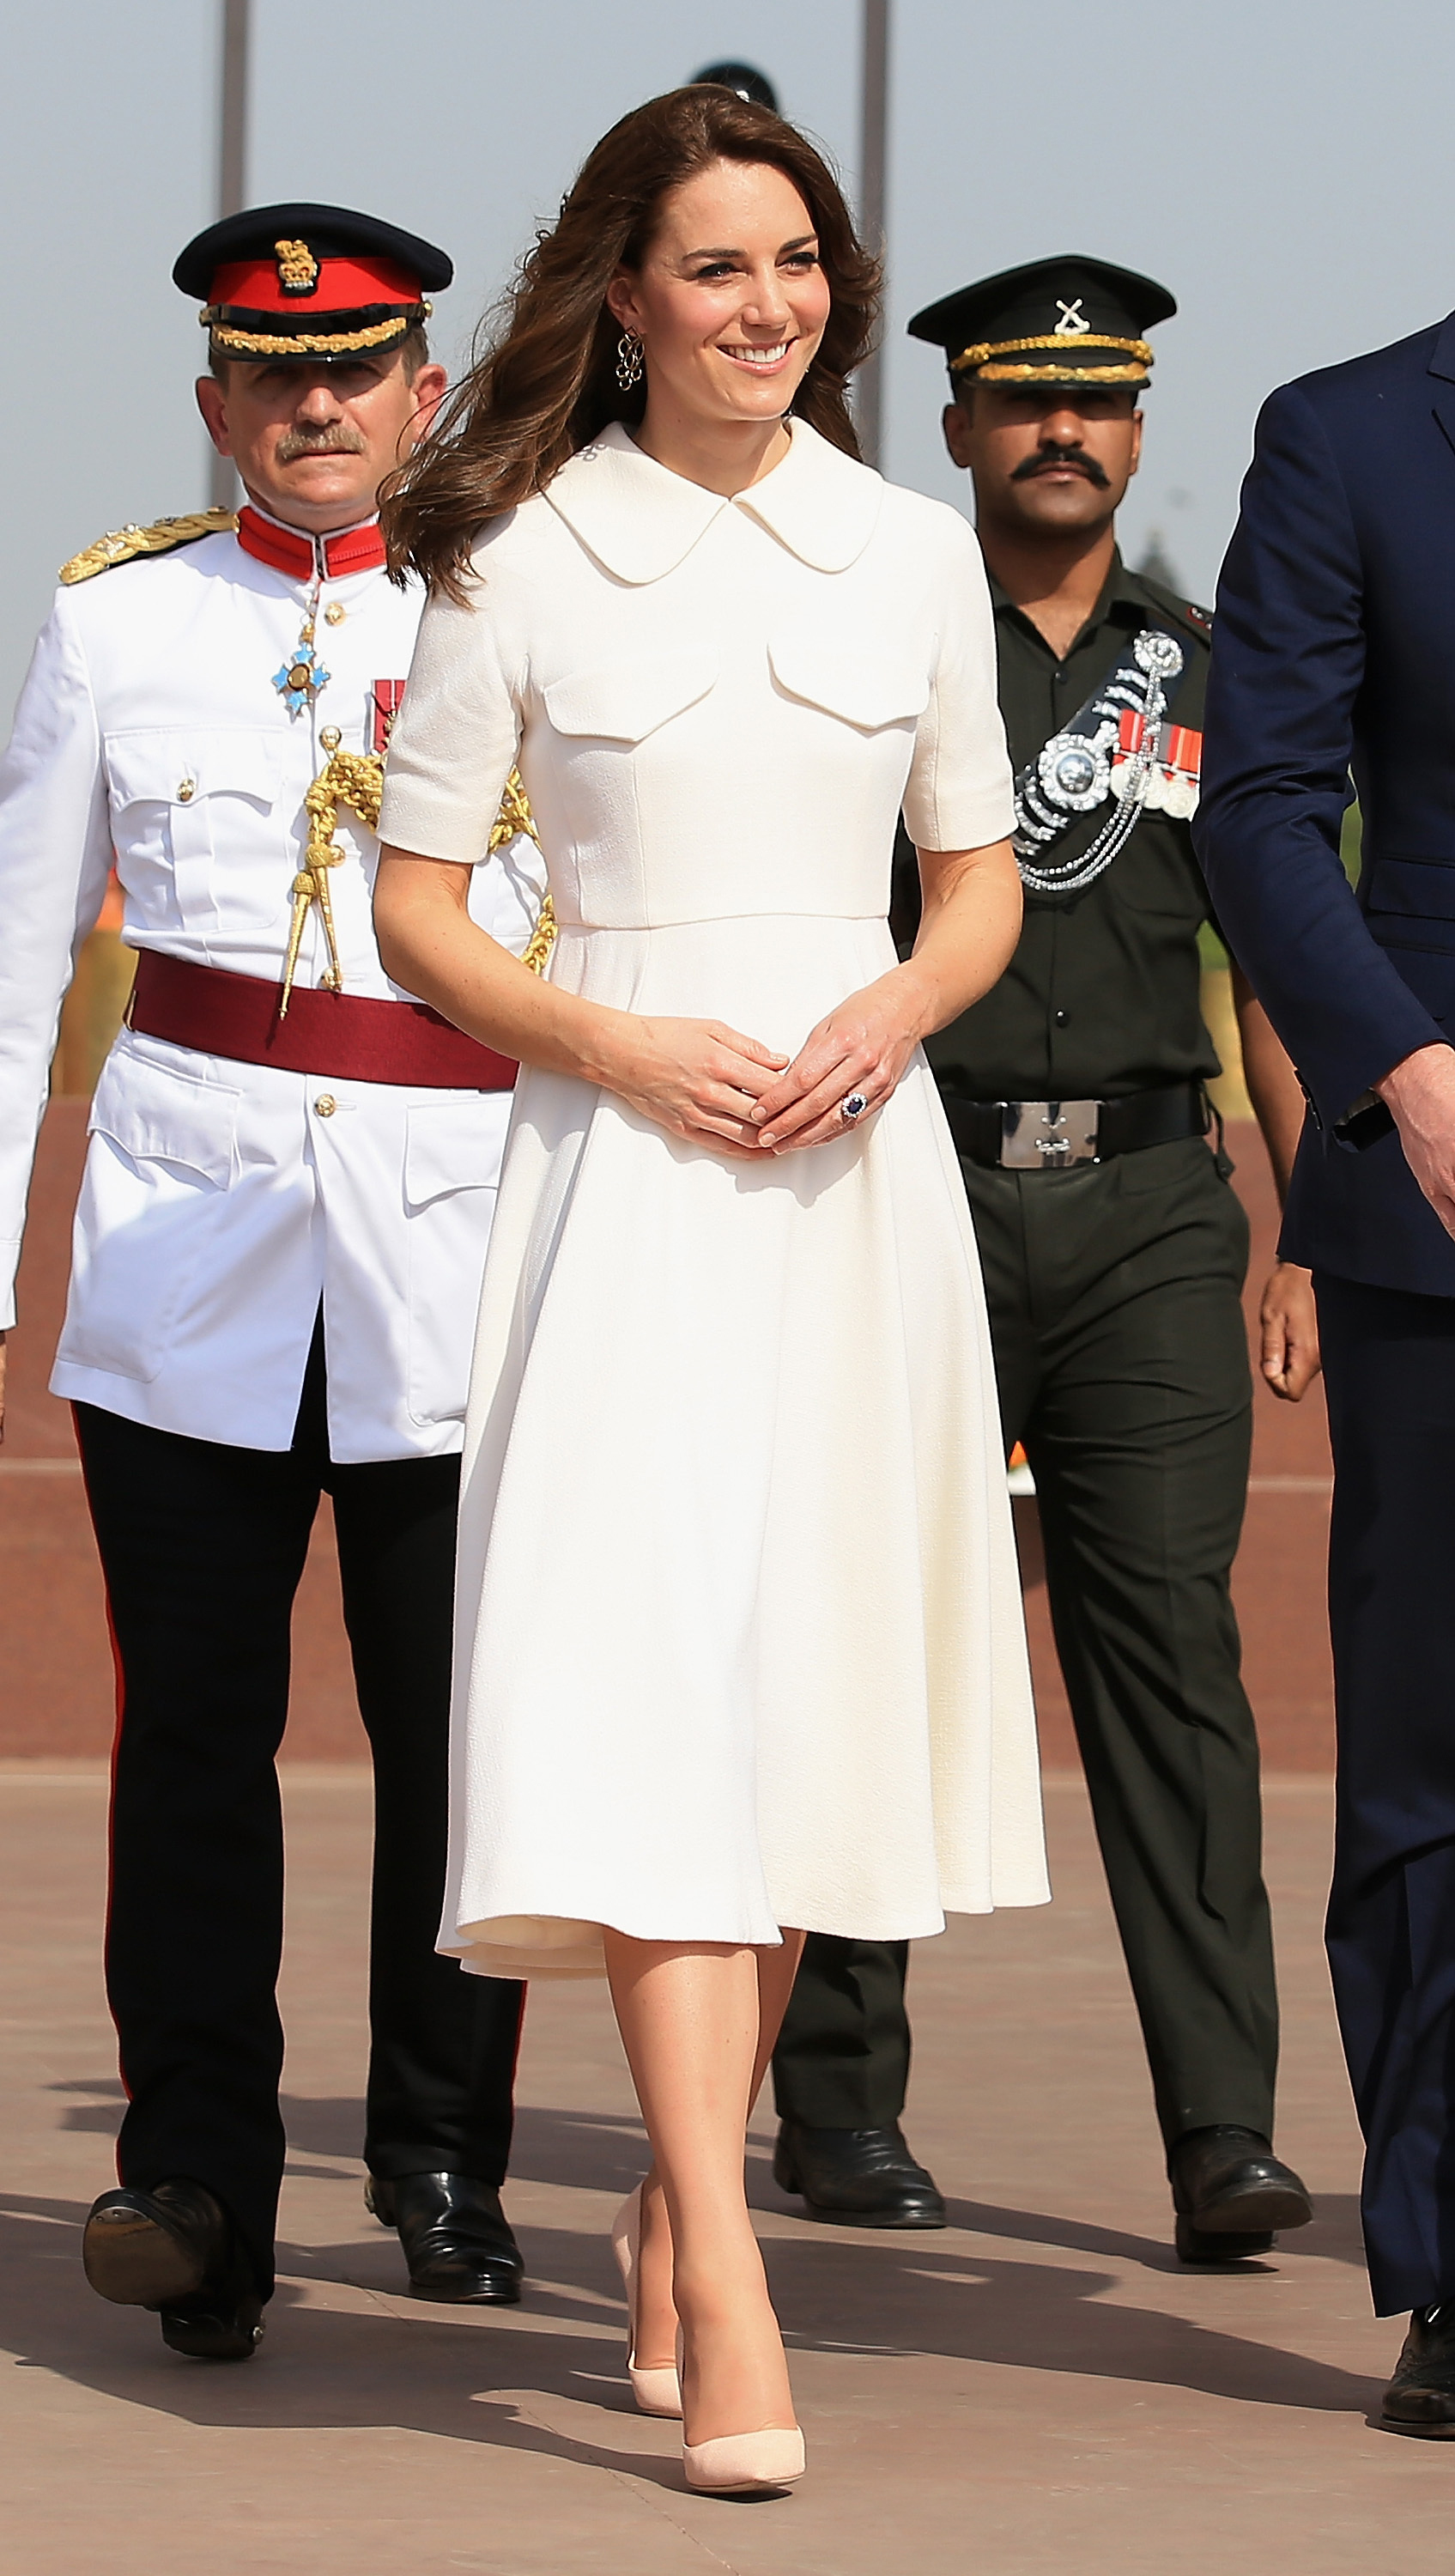 The Duchess of Cambridge during a visit to India Gate in New Dehli, India on April 11, 2016.